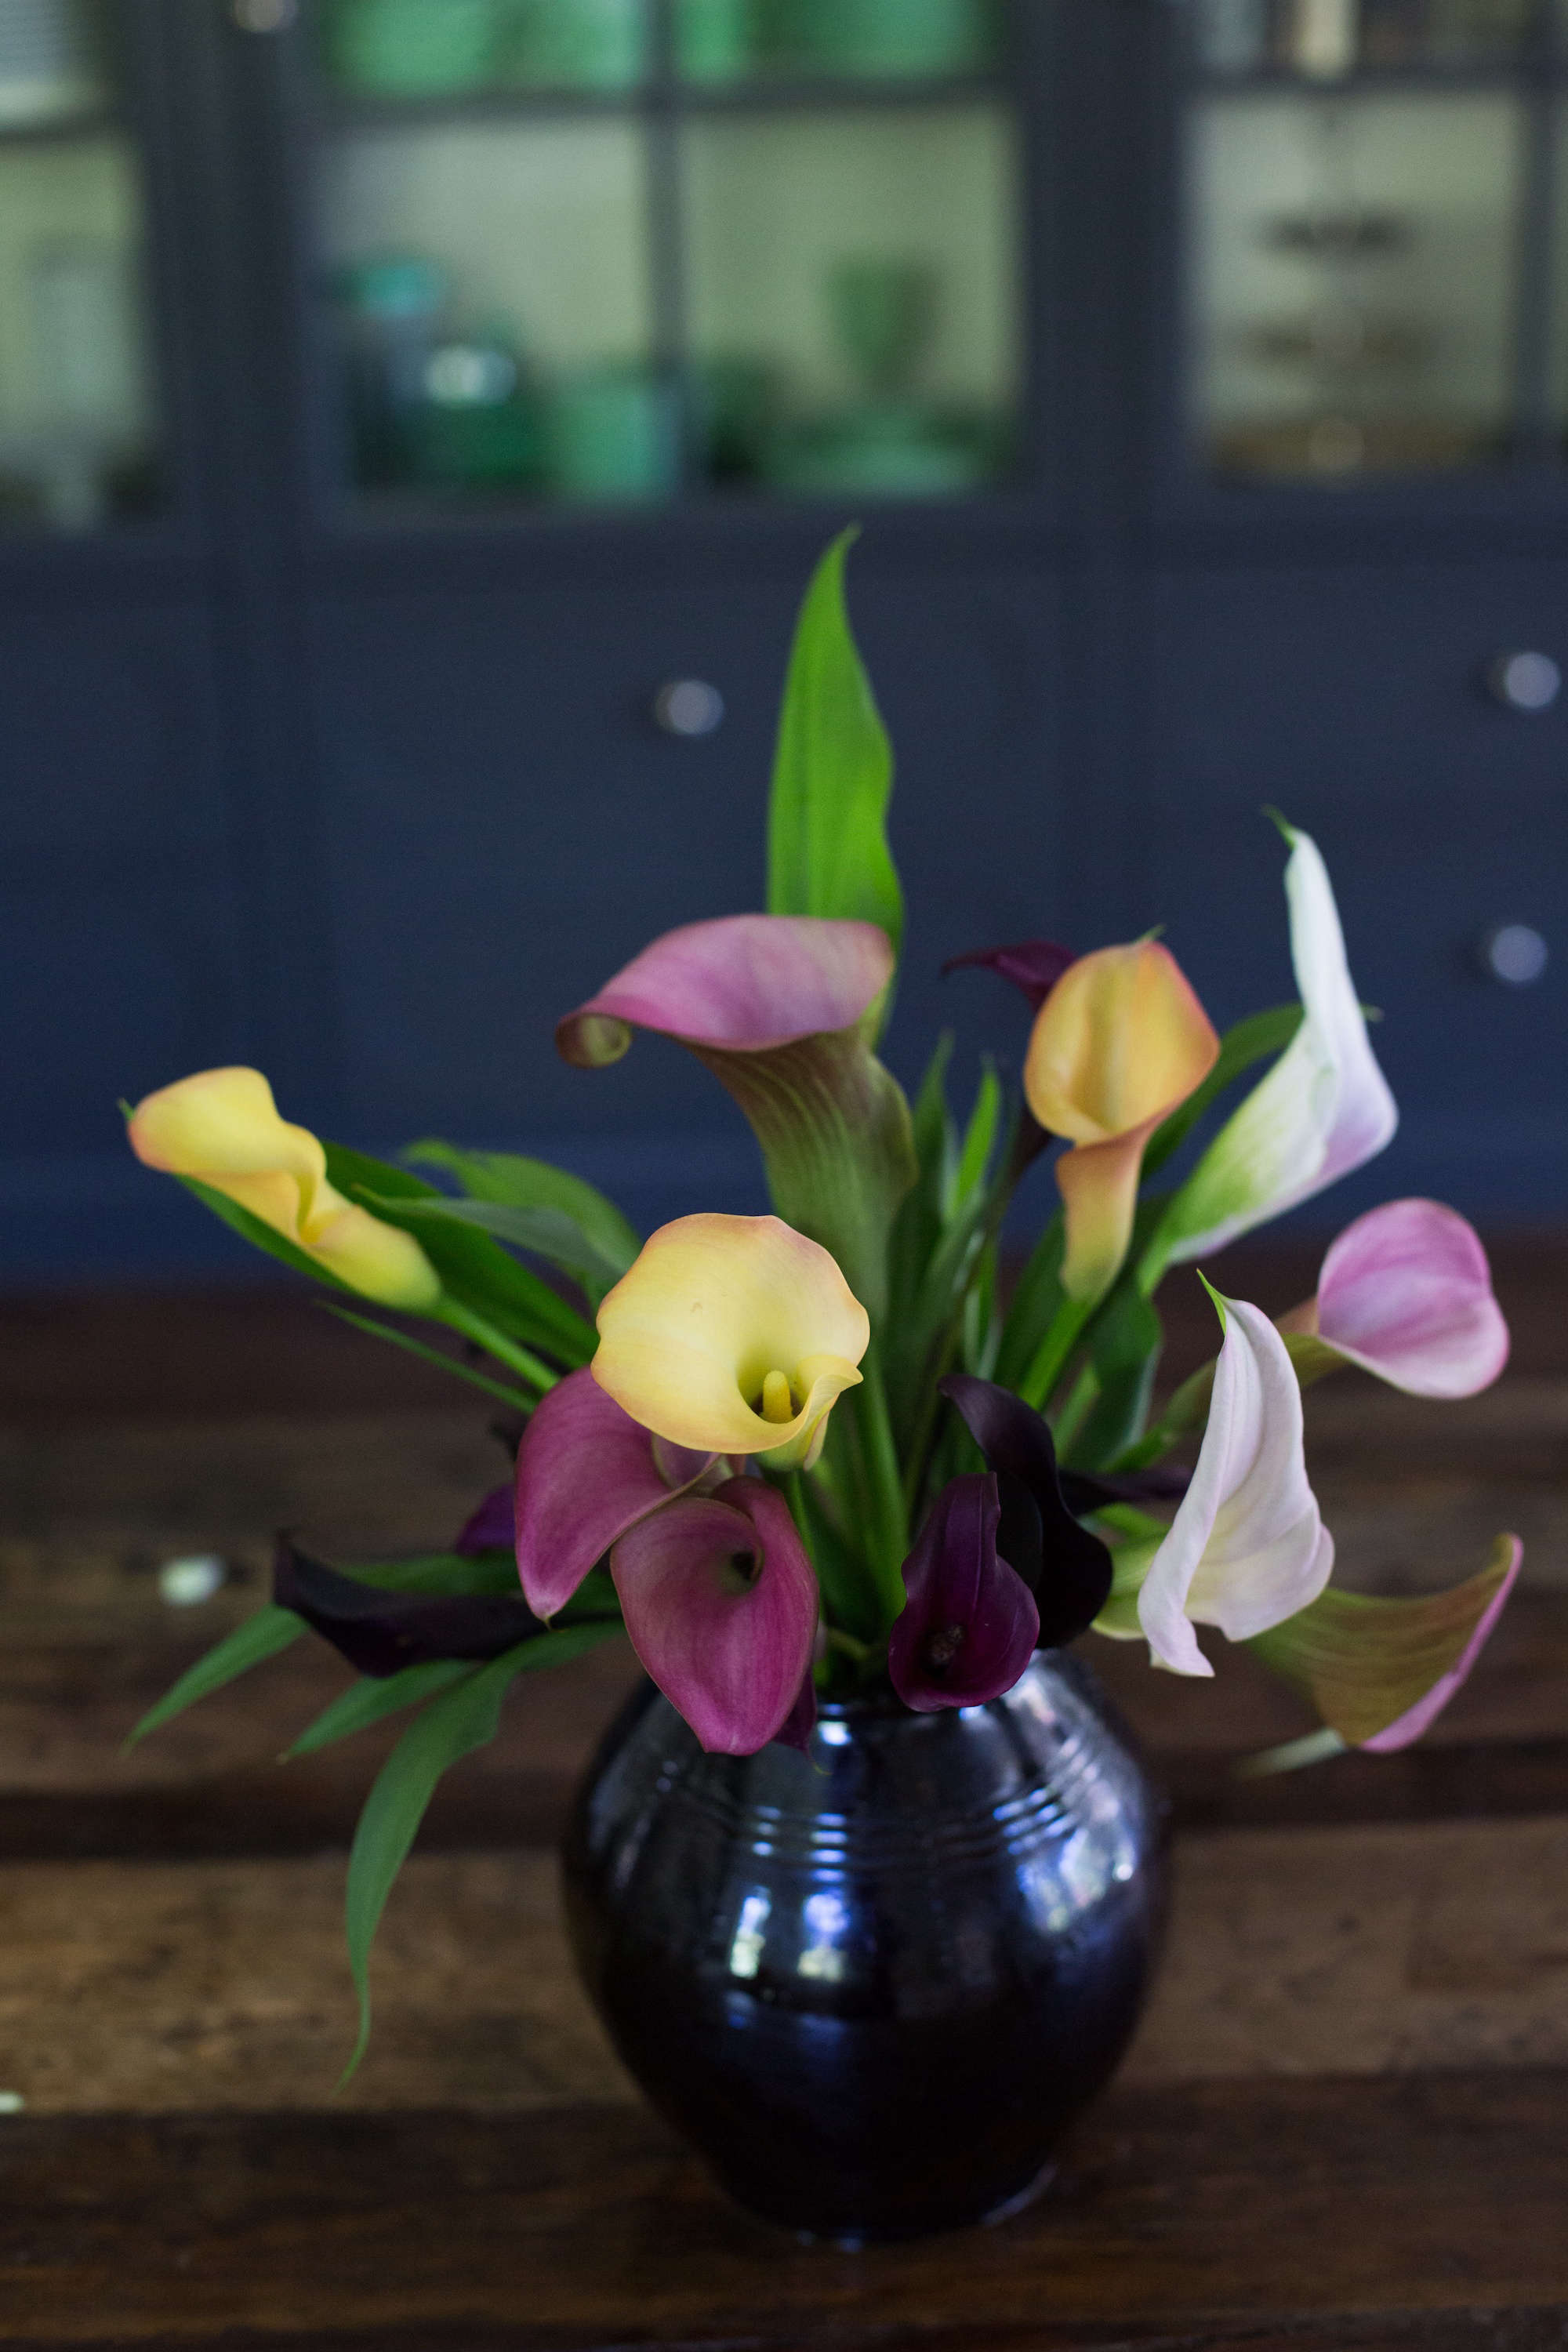 Calla lily rethinking a bridal bouquet flower gardenista calla lilies were go to wedding flowers even before cornelius vanderbilts great great granddaughter consuelo got married in 1926 in her familys fifth izmirmasajfo